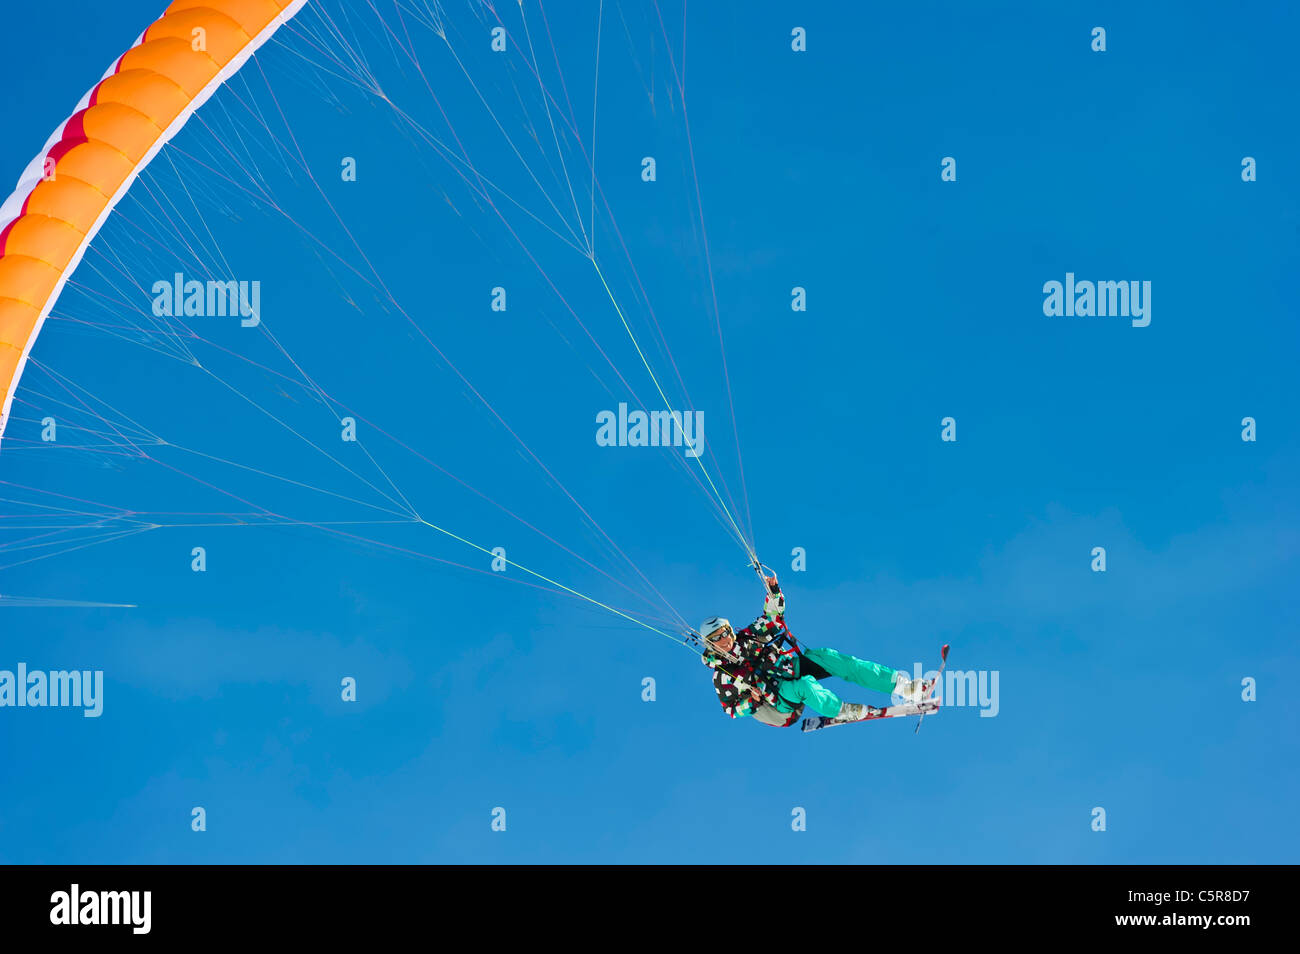 A female Paraglider in a high powered turn smiles. - Stock Image